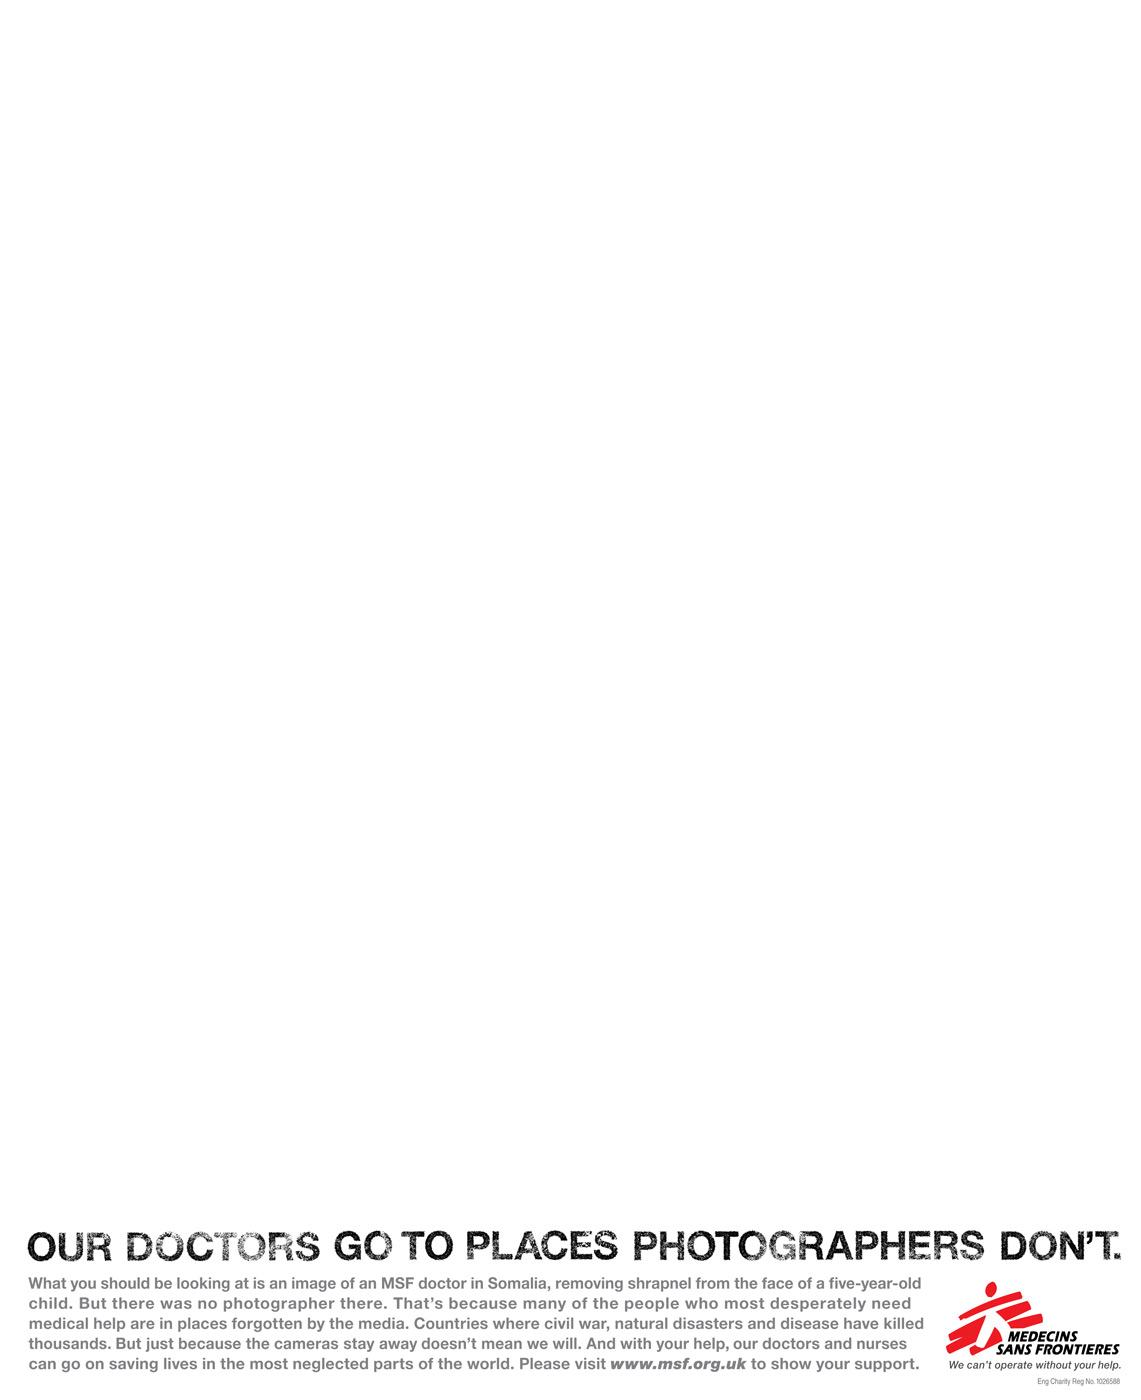 Medecins Sans Frontieres Print Ad -  No photo